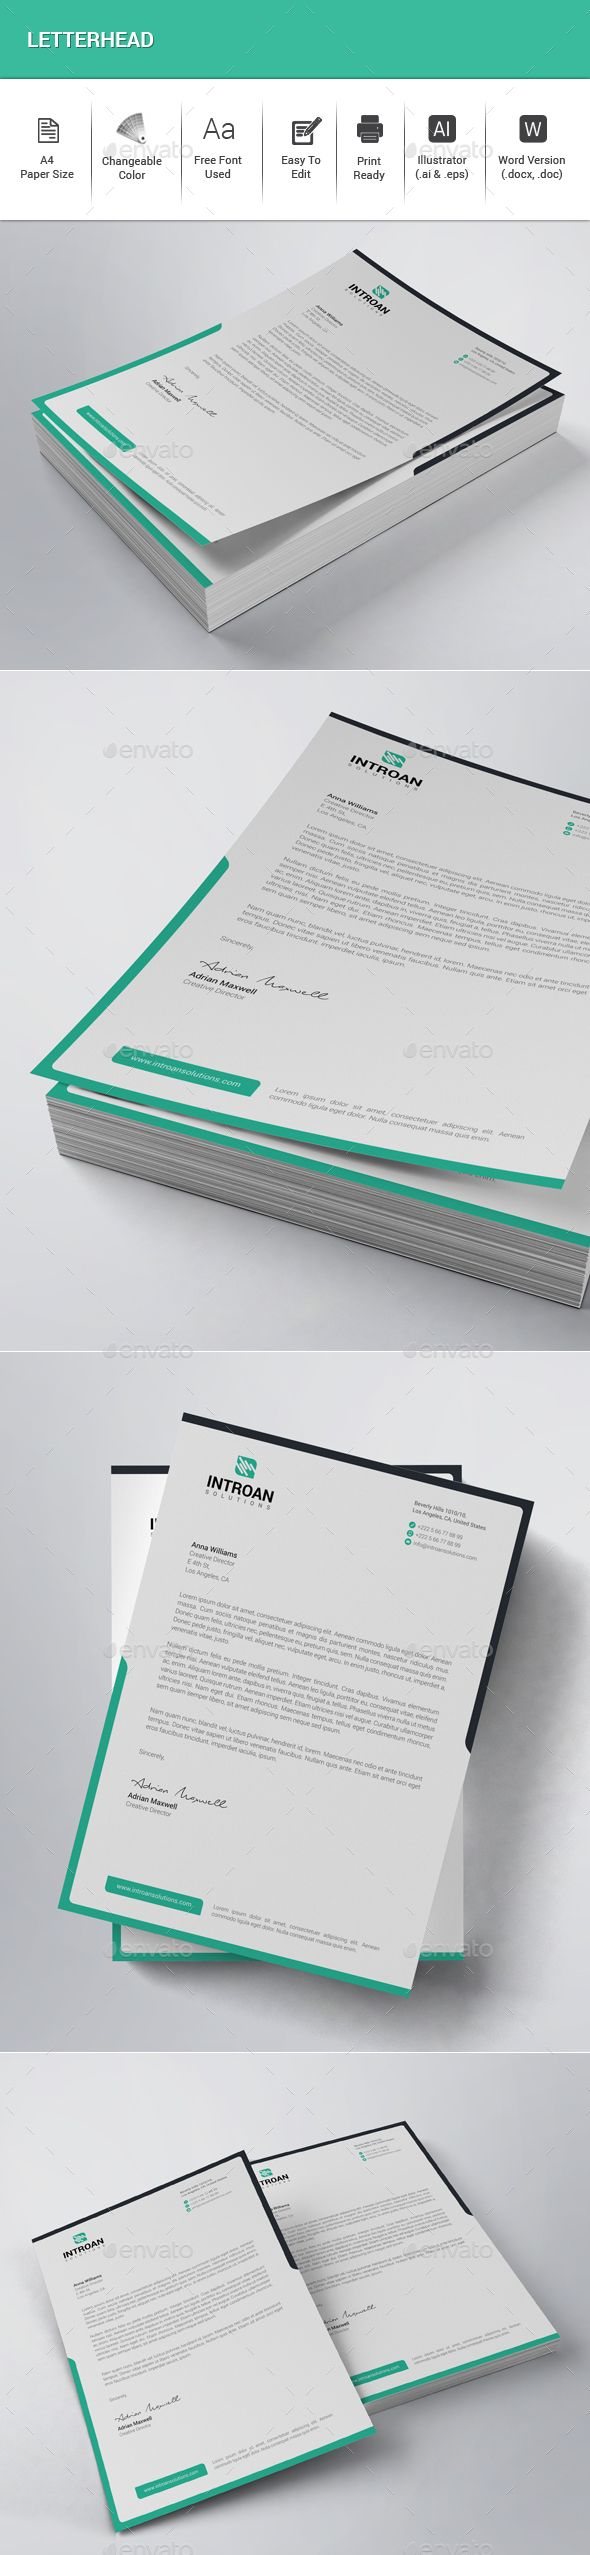 Letterhead Template Vector EPS, AI Illustrator, MS Word